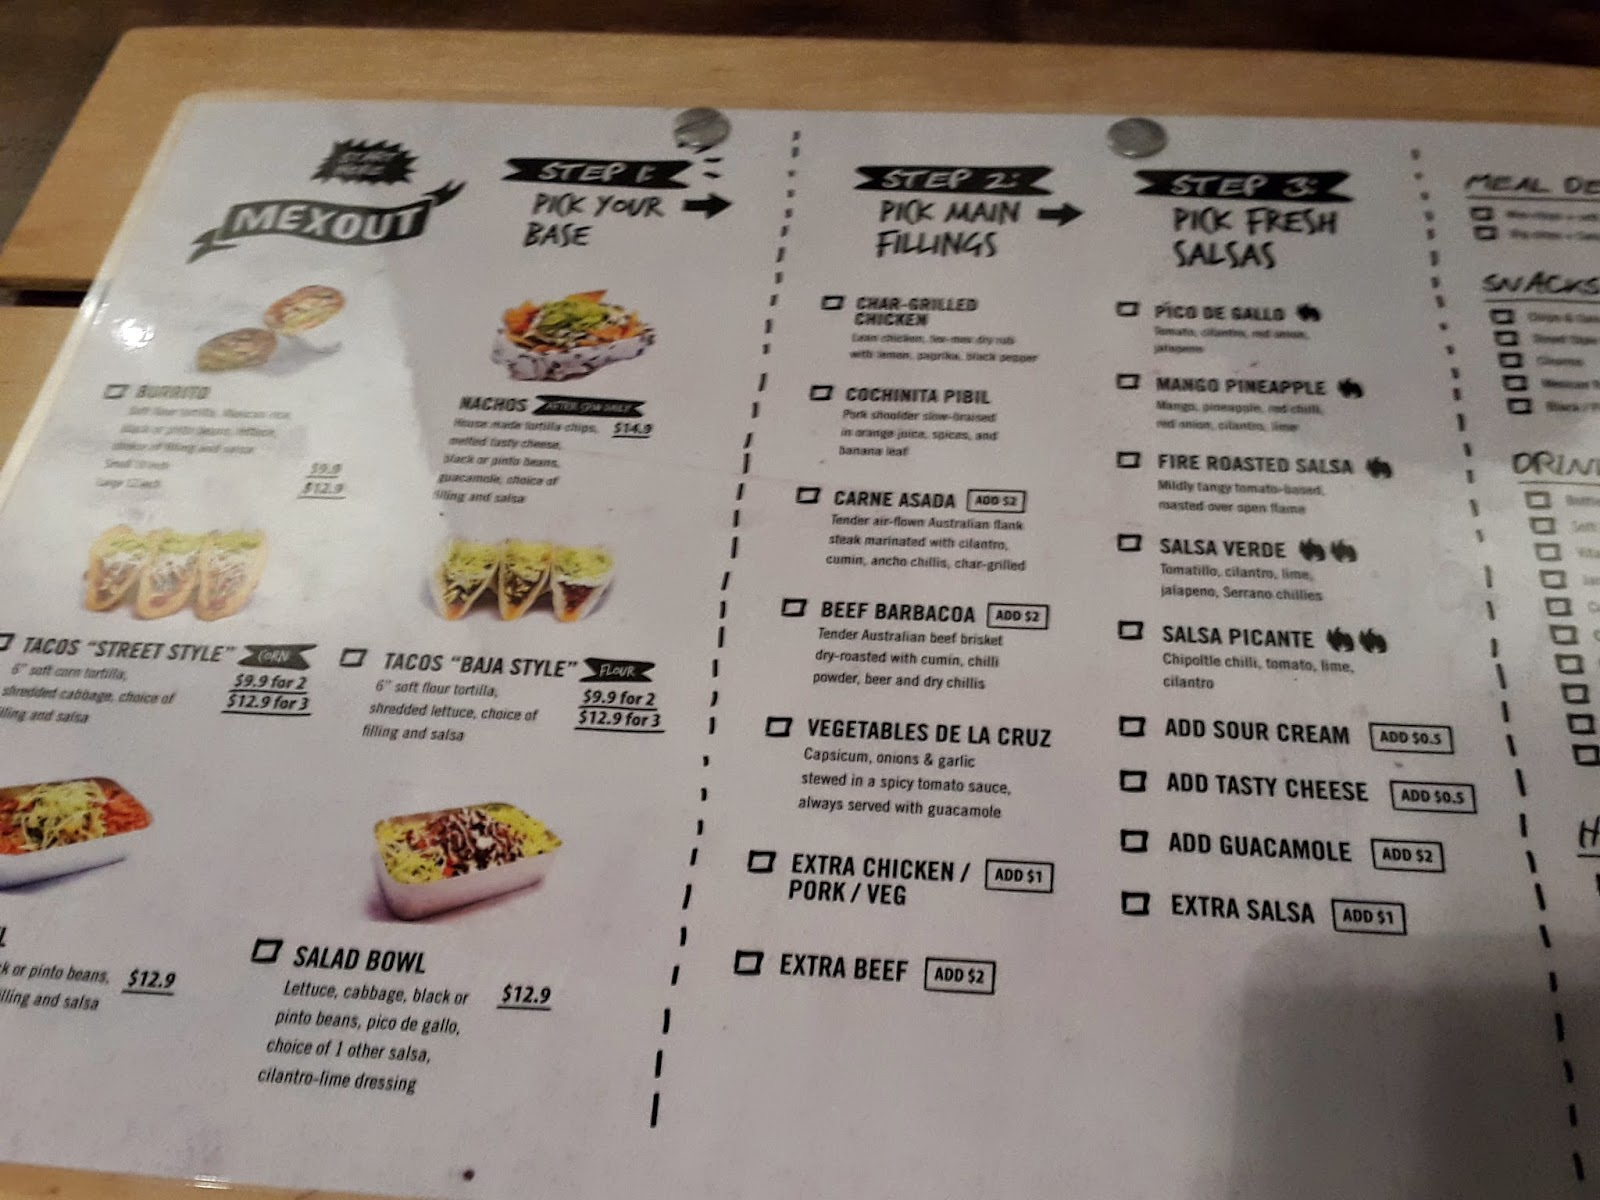 Mexout Far East Square Menu